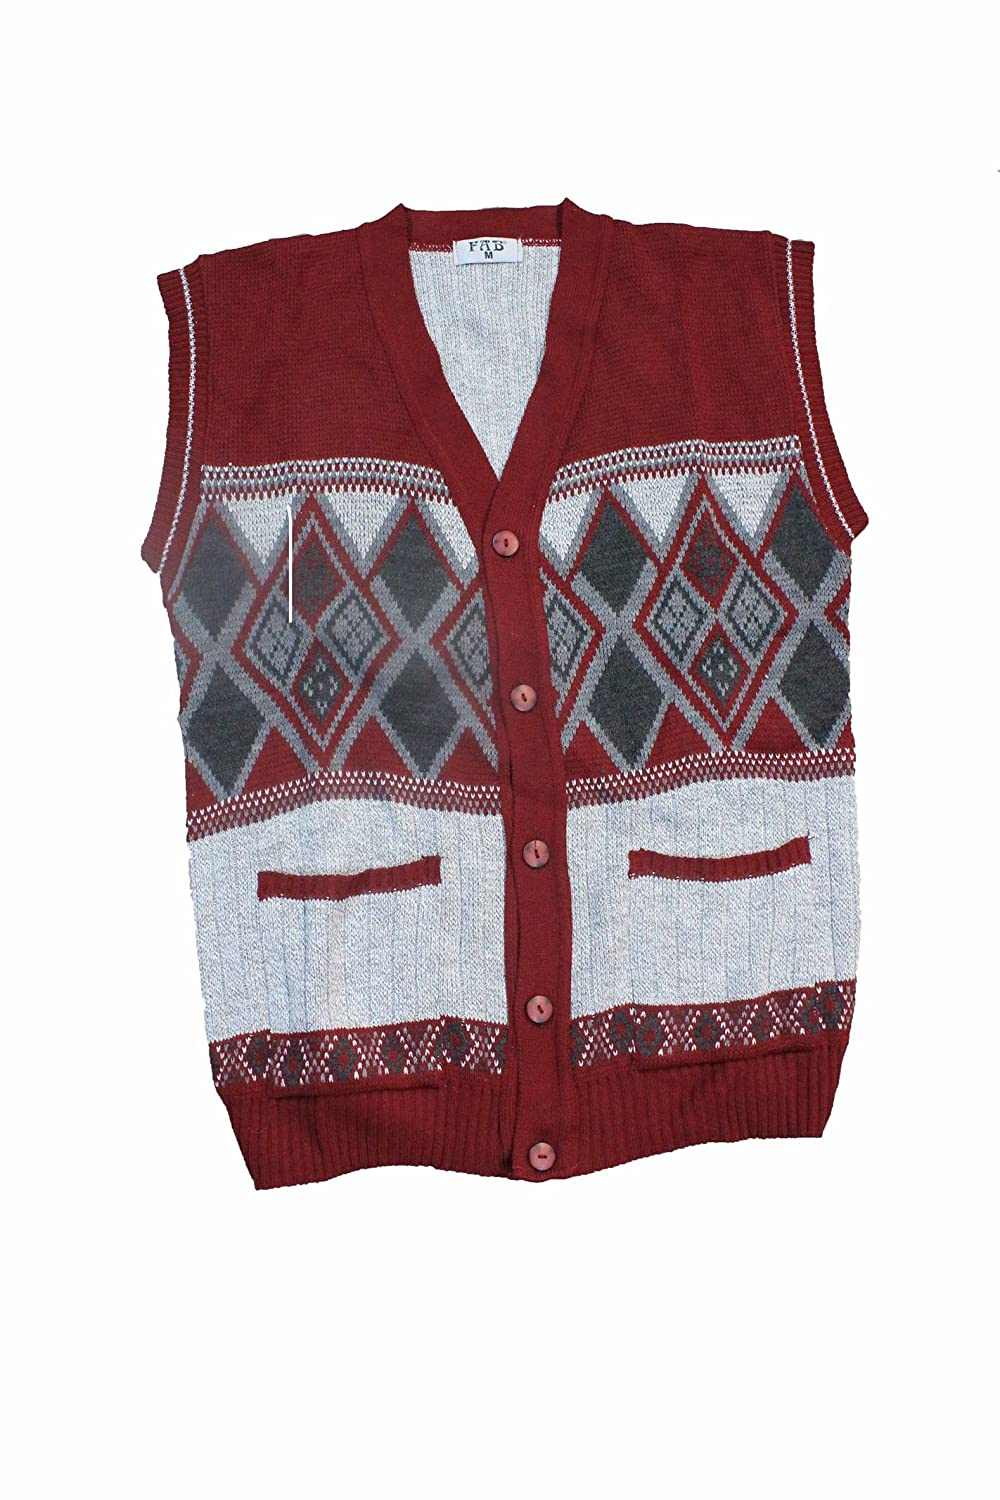 Clothing Trader Gents Grandad Sleeveless Button Up Argyle Diamond Pattern Mens Waistcoat 3028 w/c